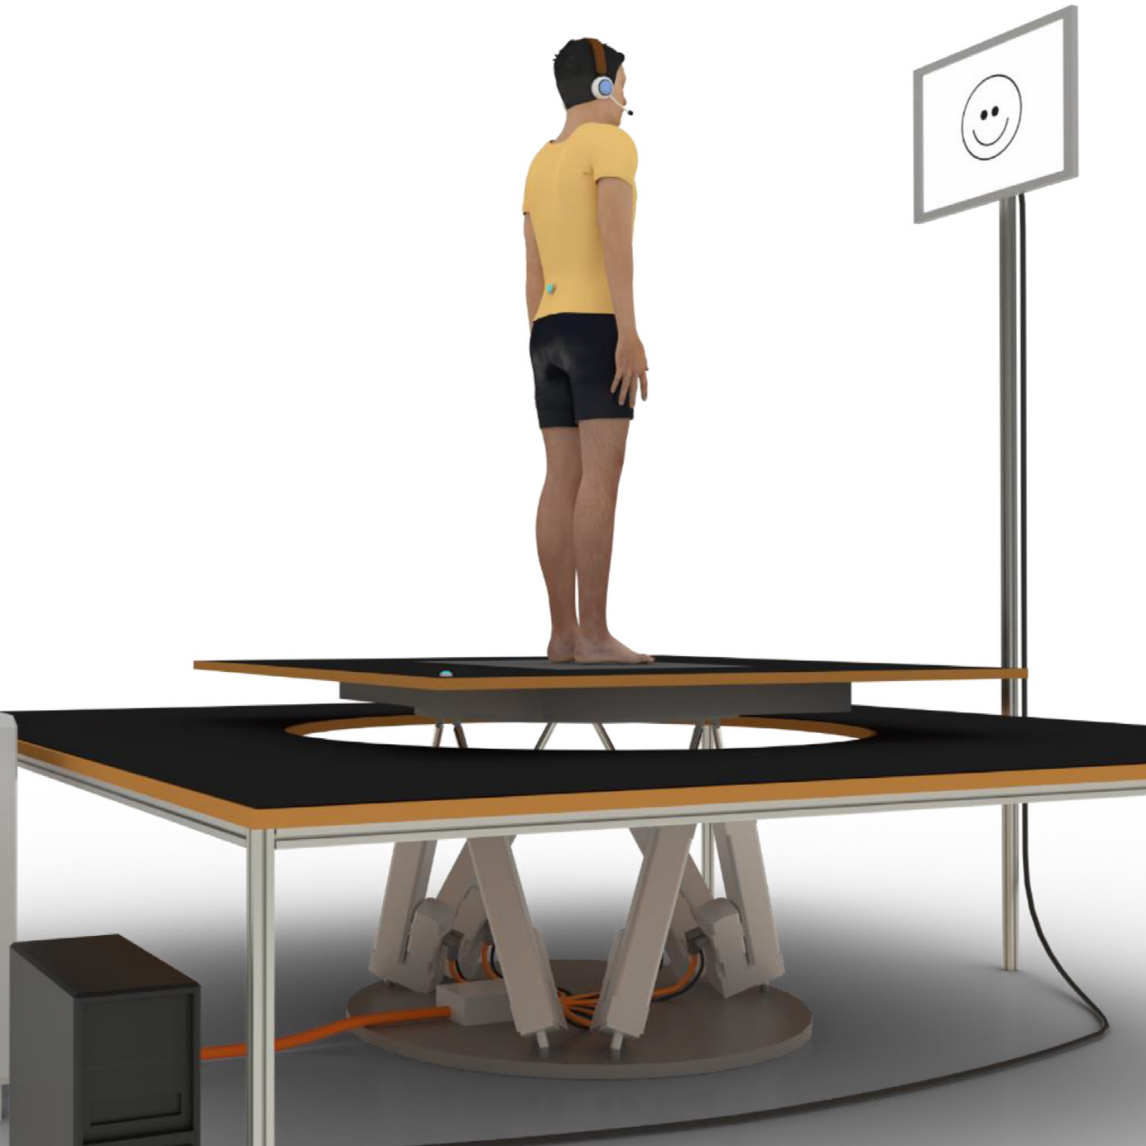 Small, movement dependent perturbations substantially alter postural control strategy in healthy young adults